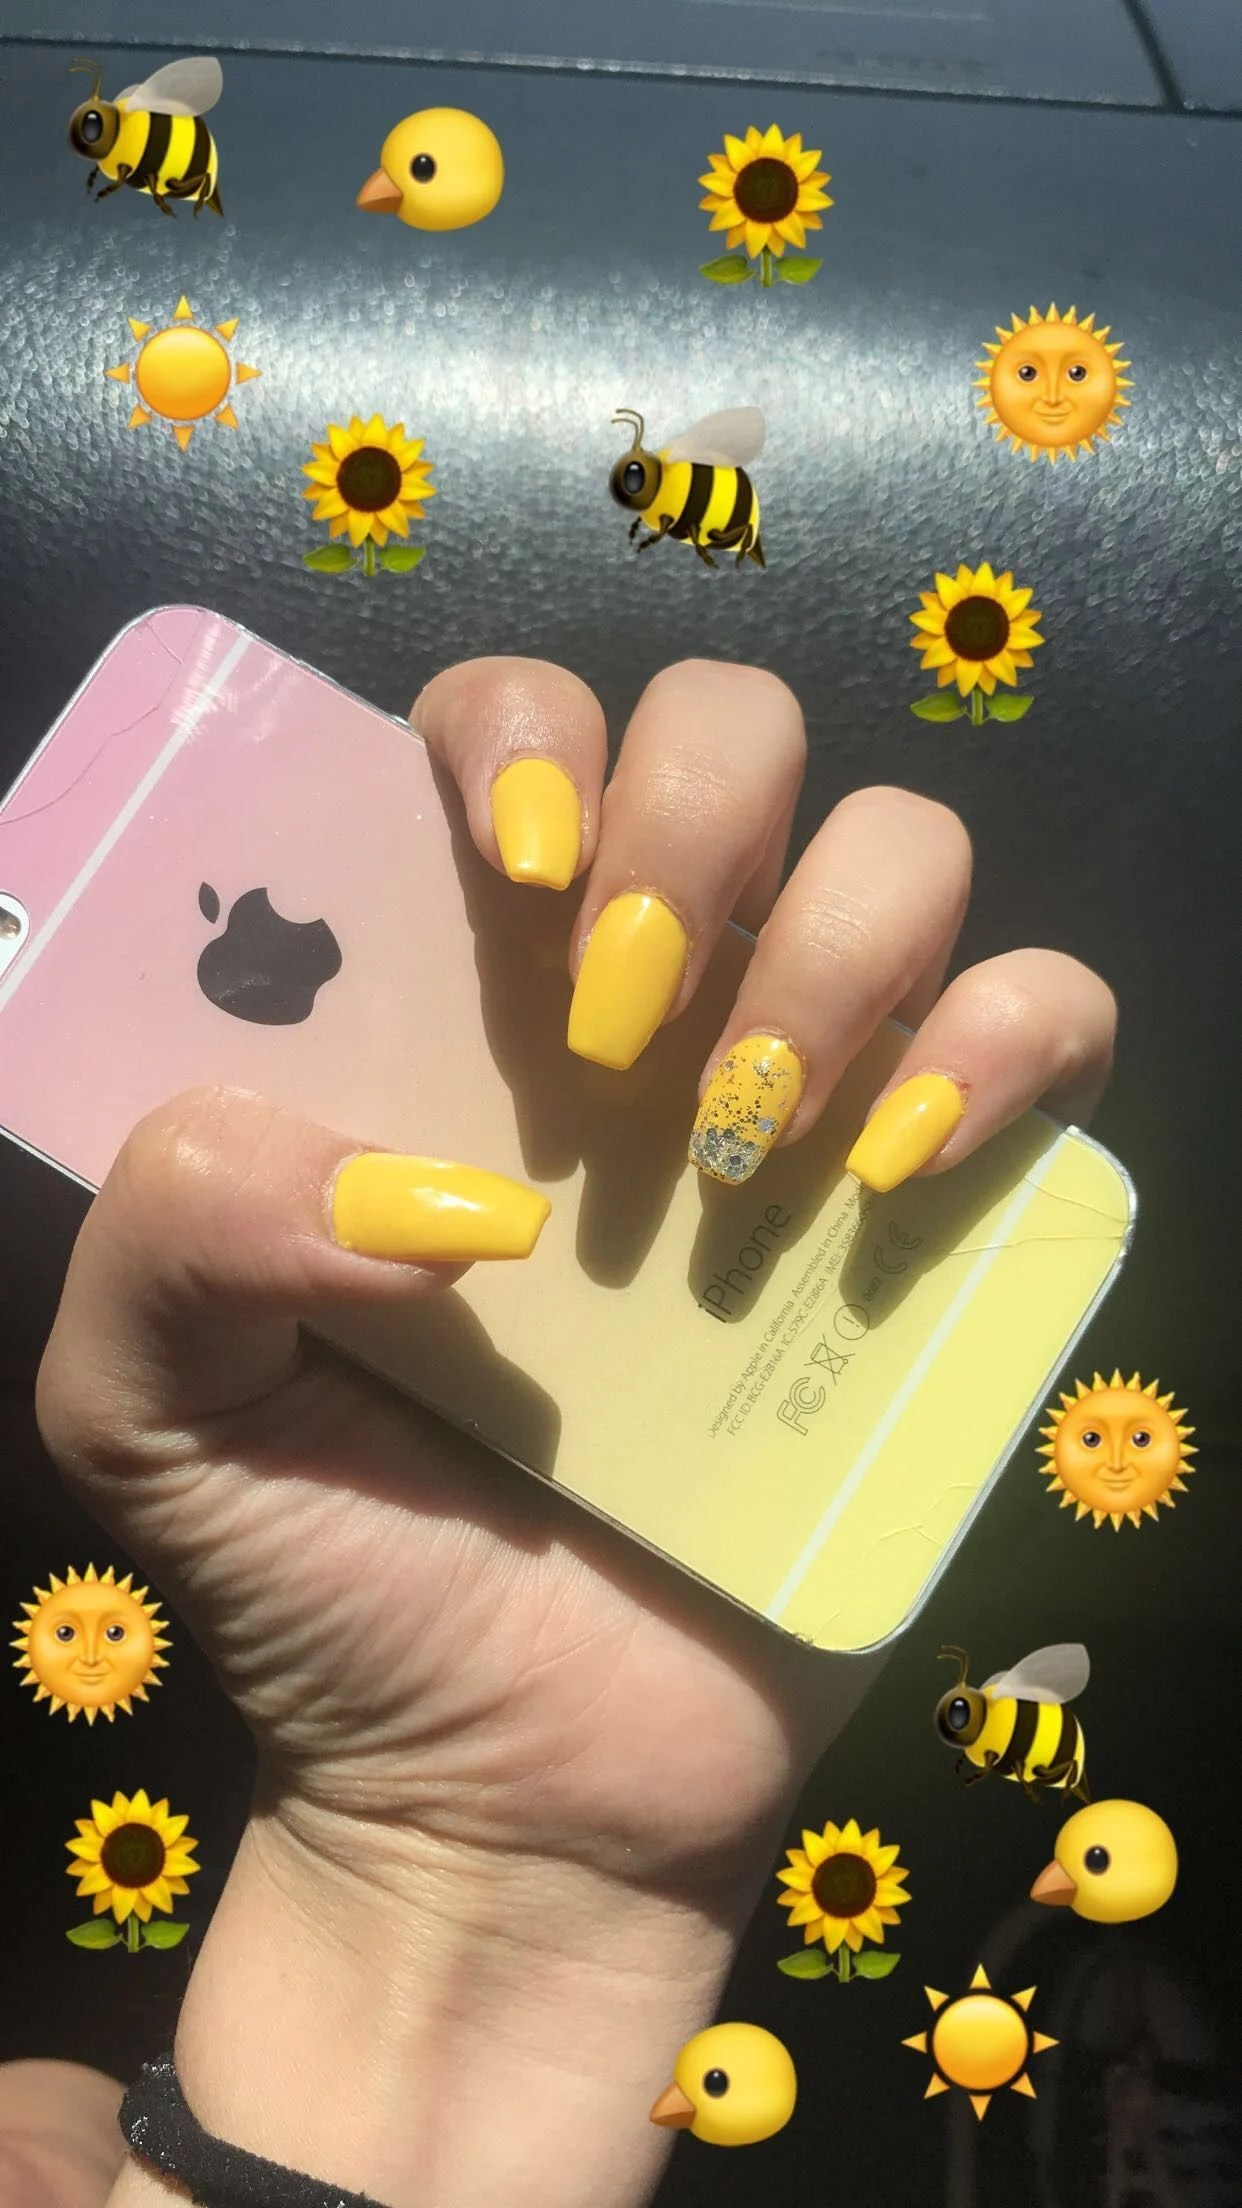 Pictures Of Cute Nails : pictures, nails, Nails, Wallpapers, Backgrounds, WallpaperAccess